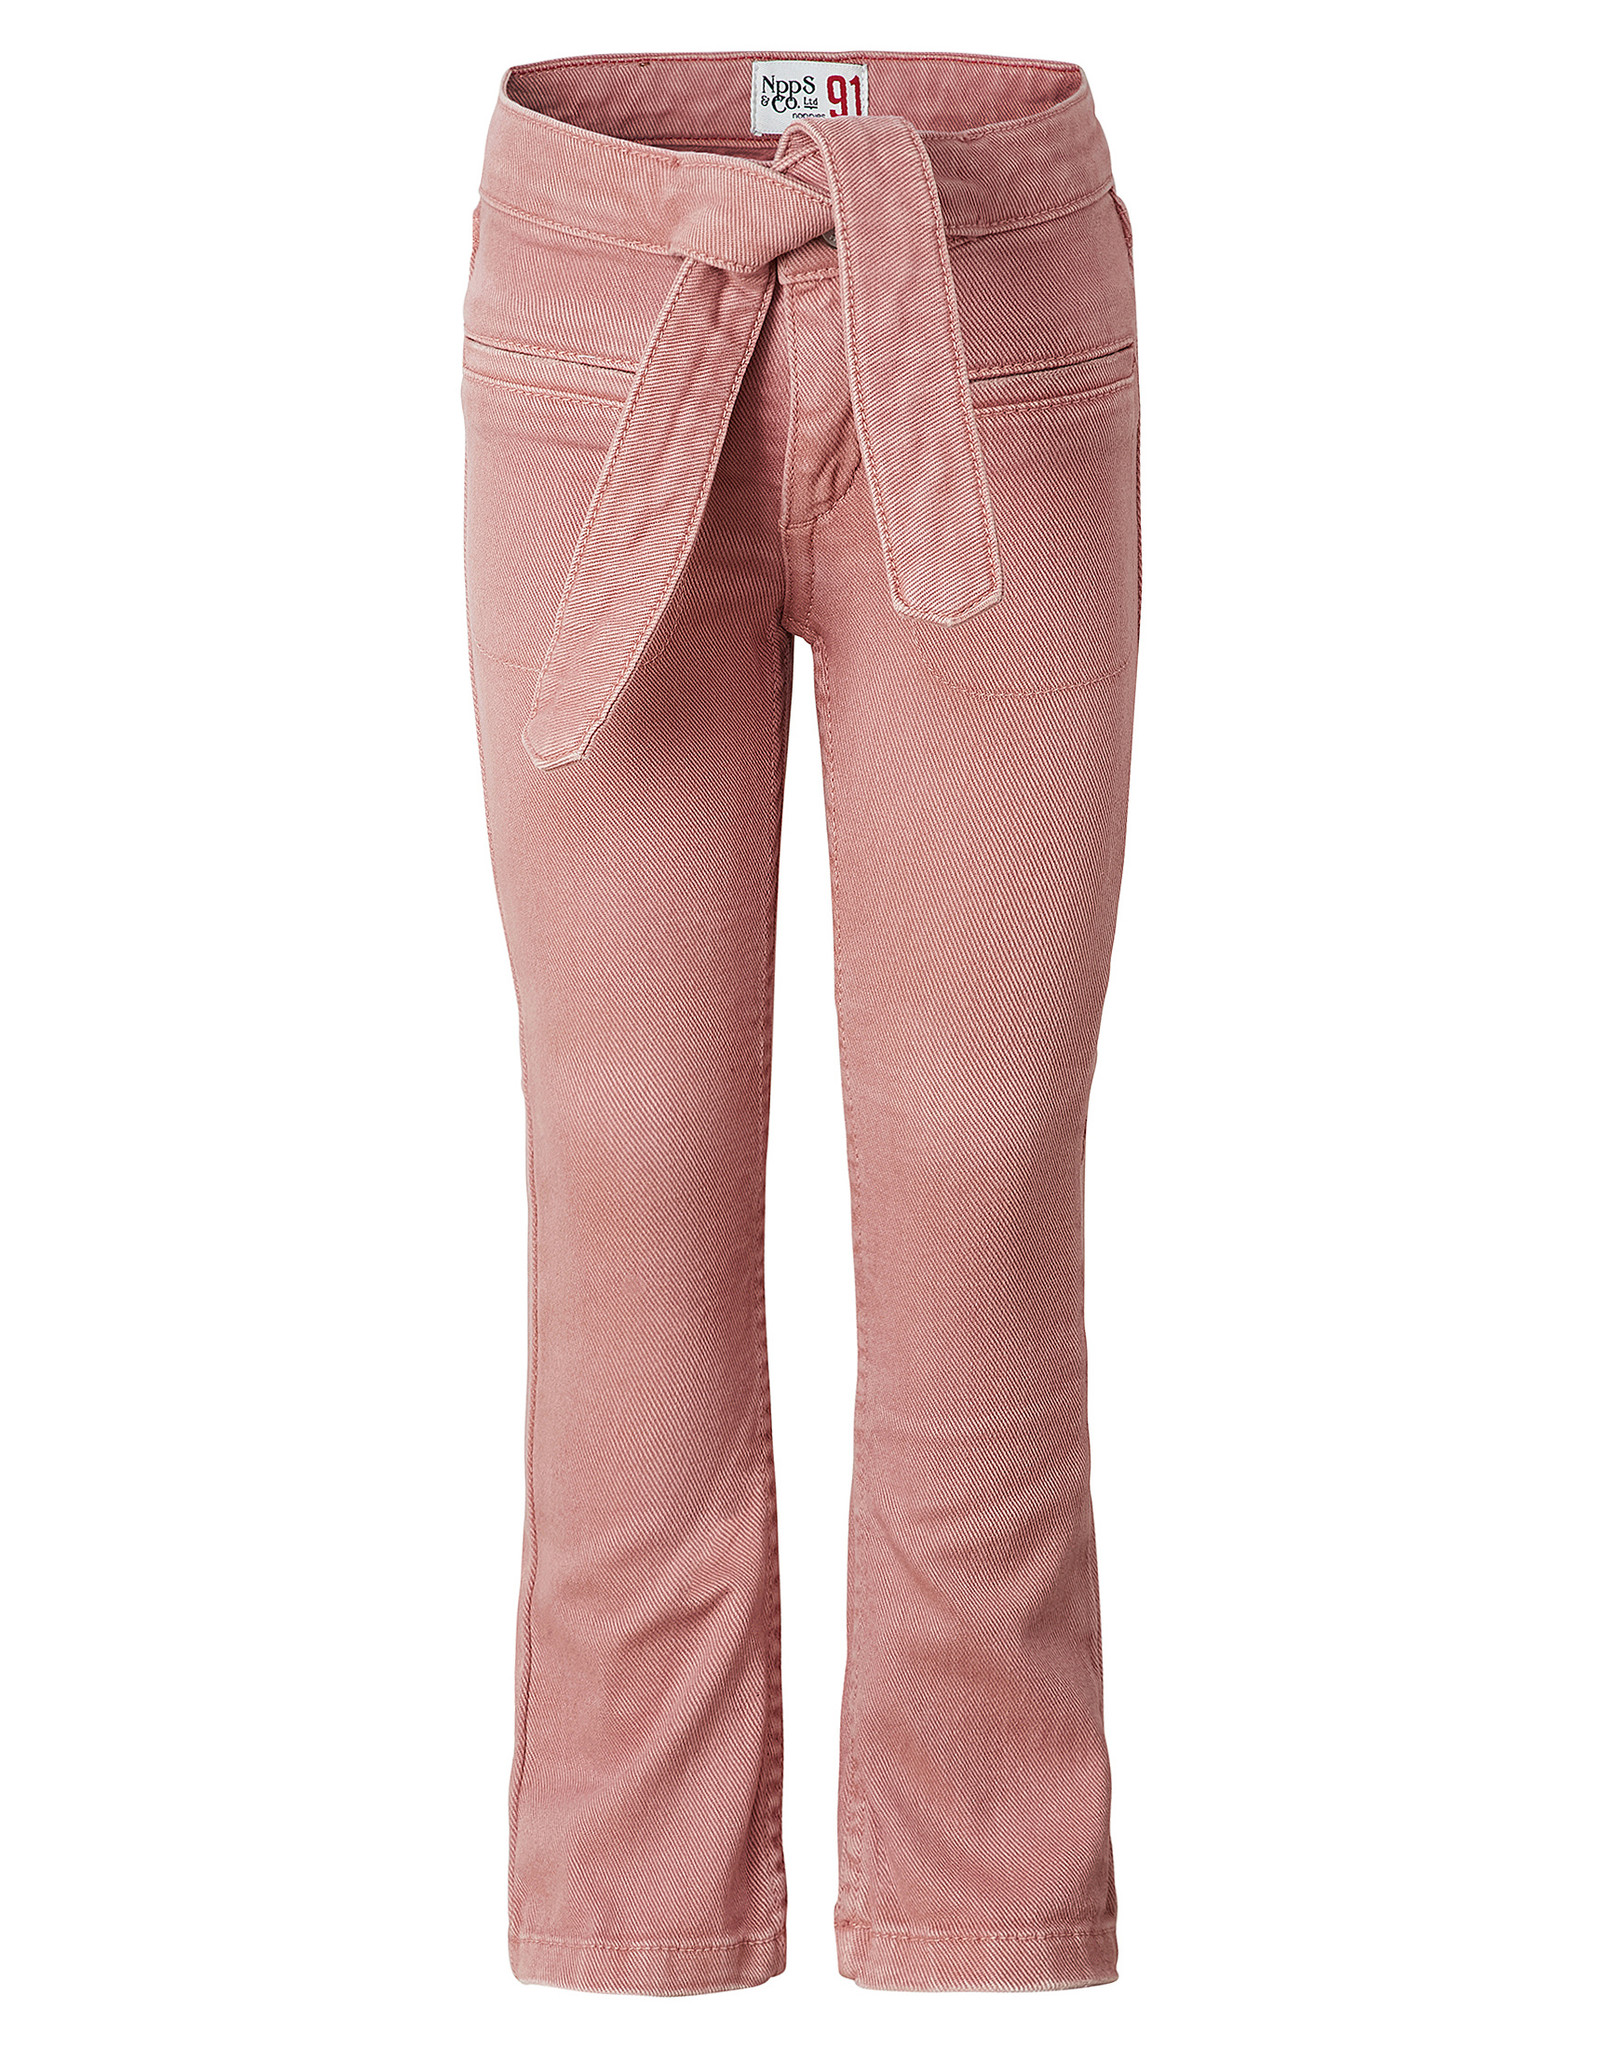 Noppies G Flaired fit pants Whites, Ancient Pink